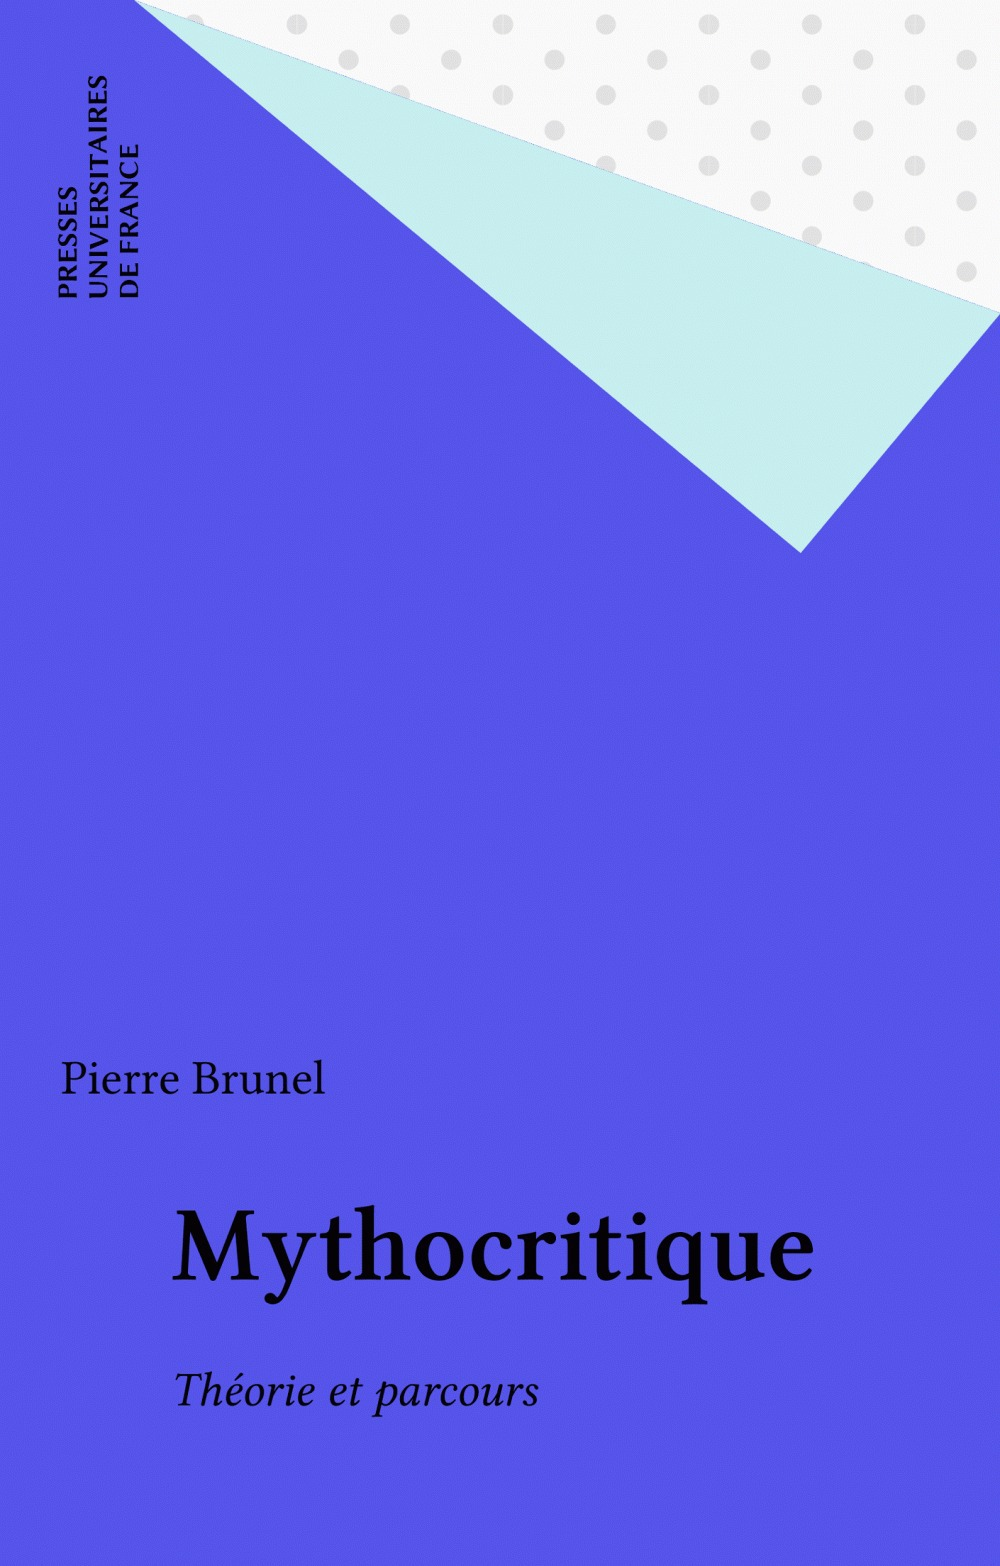 Mythocritique